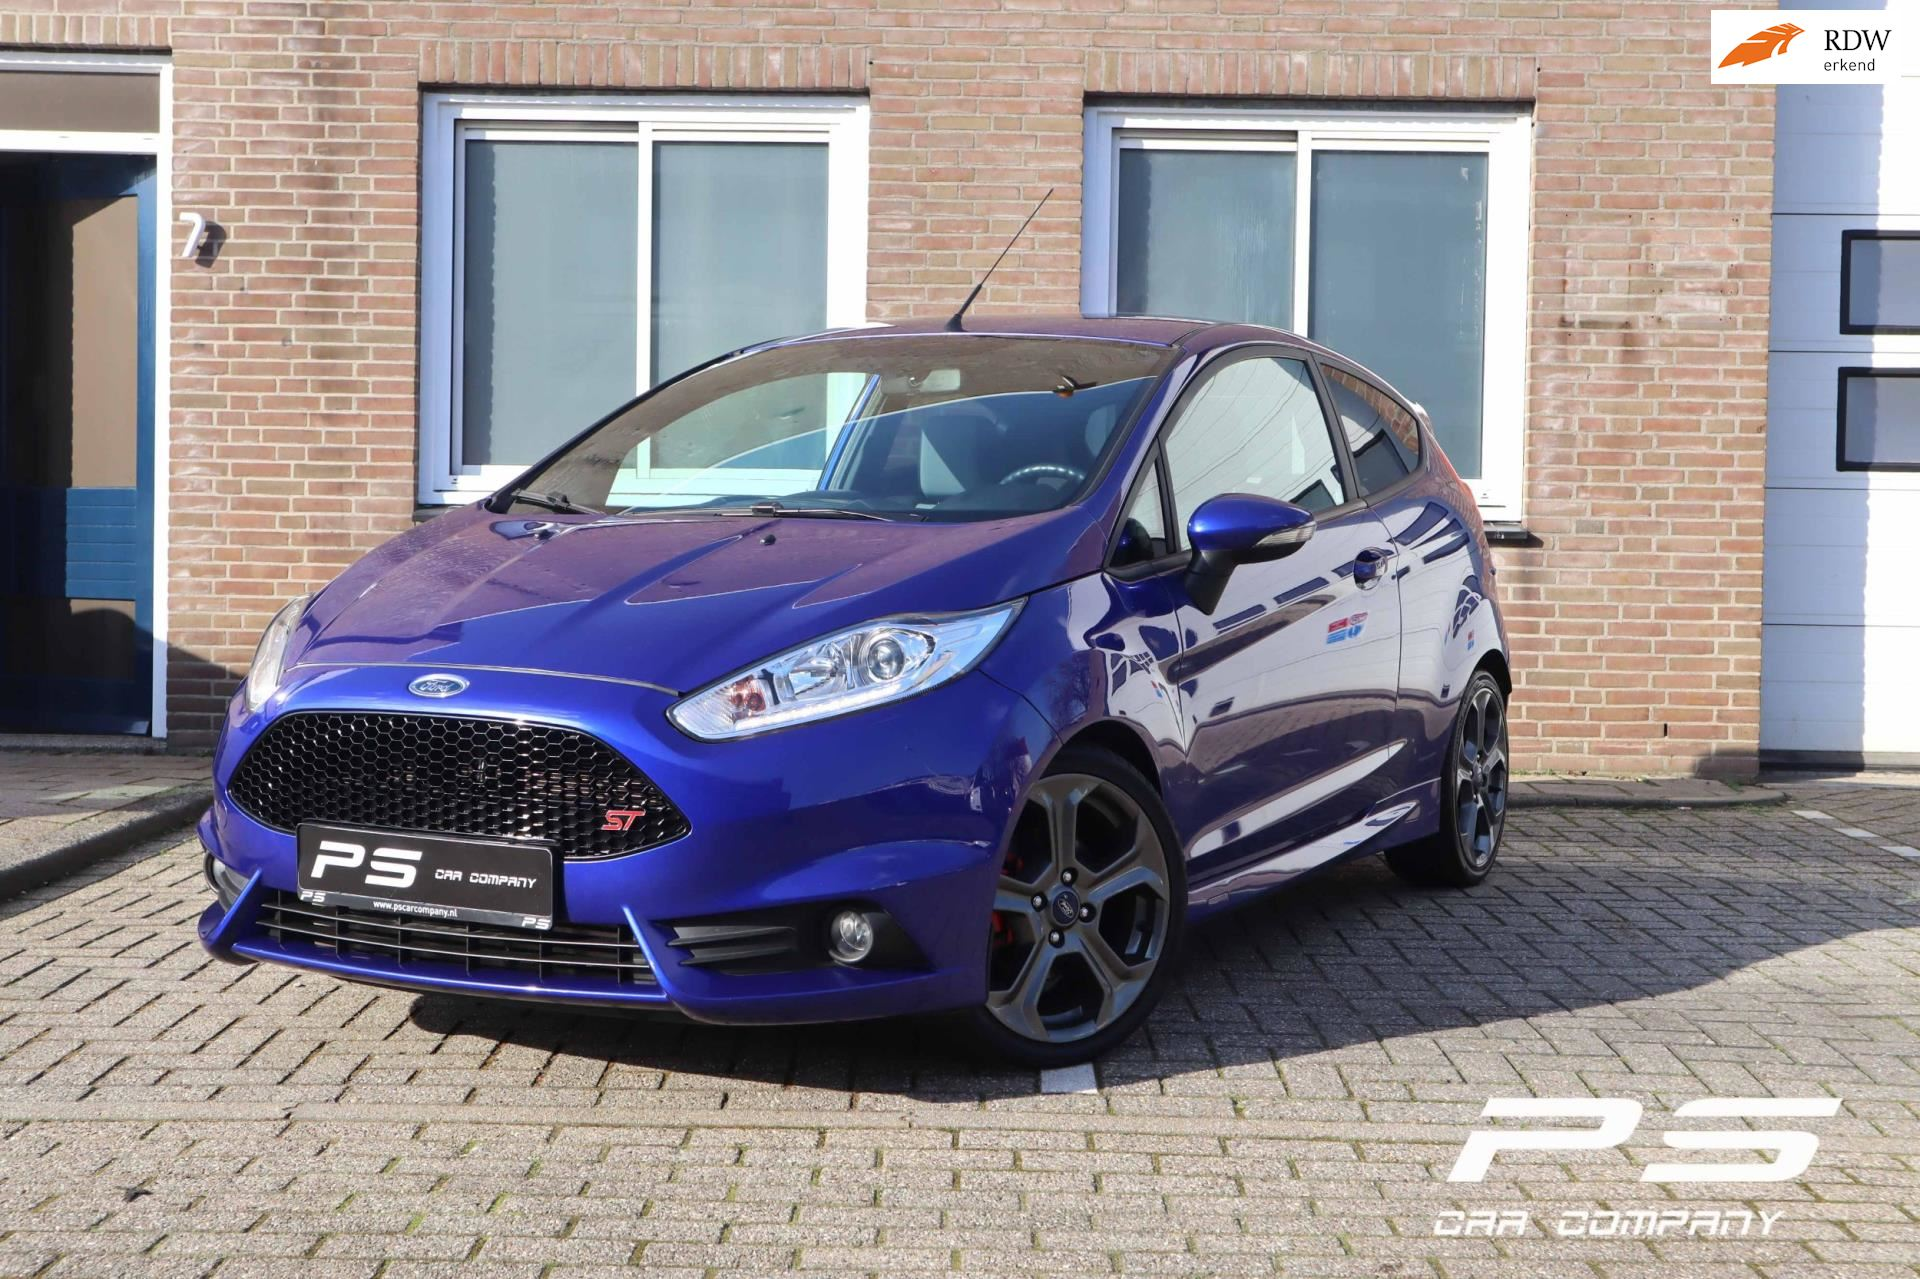 Ford Fiesta occasion - PS Car Company